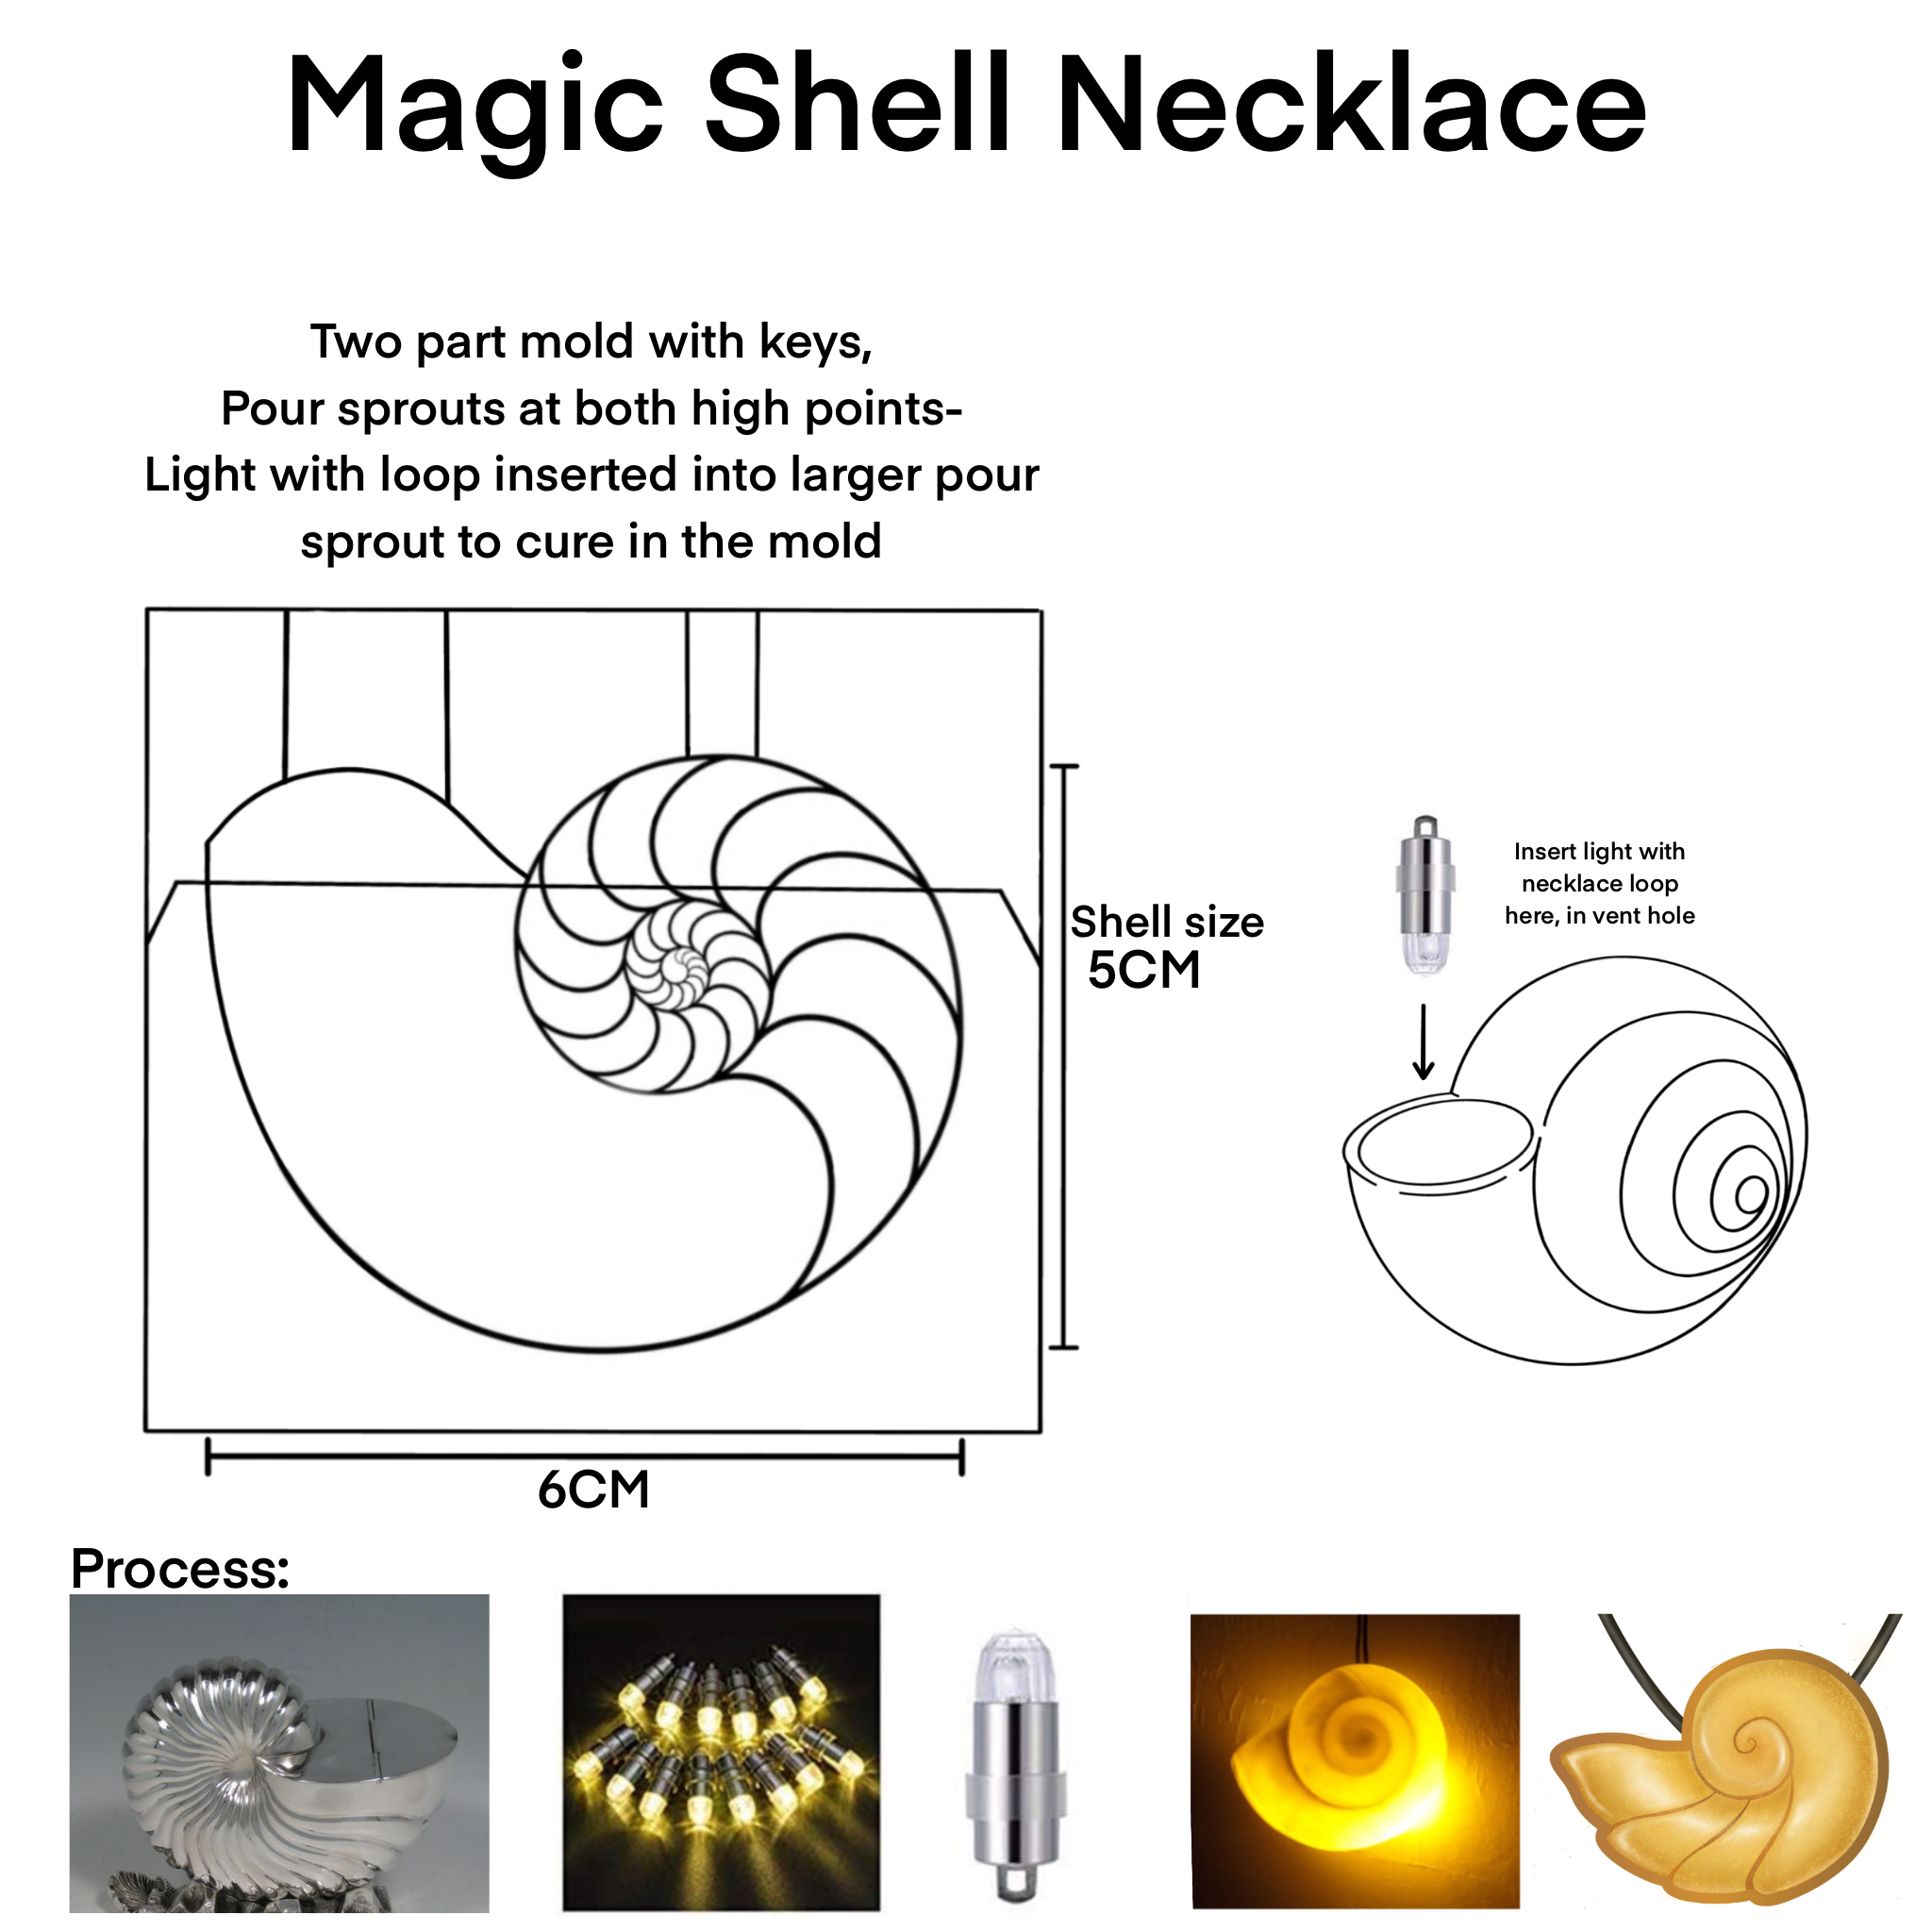 magic-shell-necklace-pitch.png